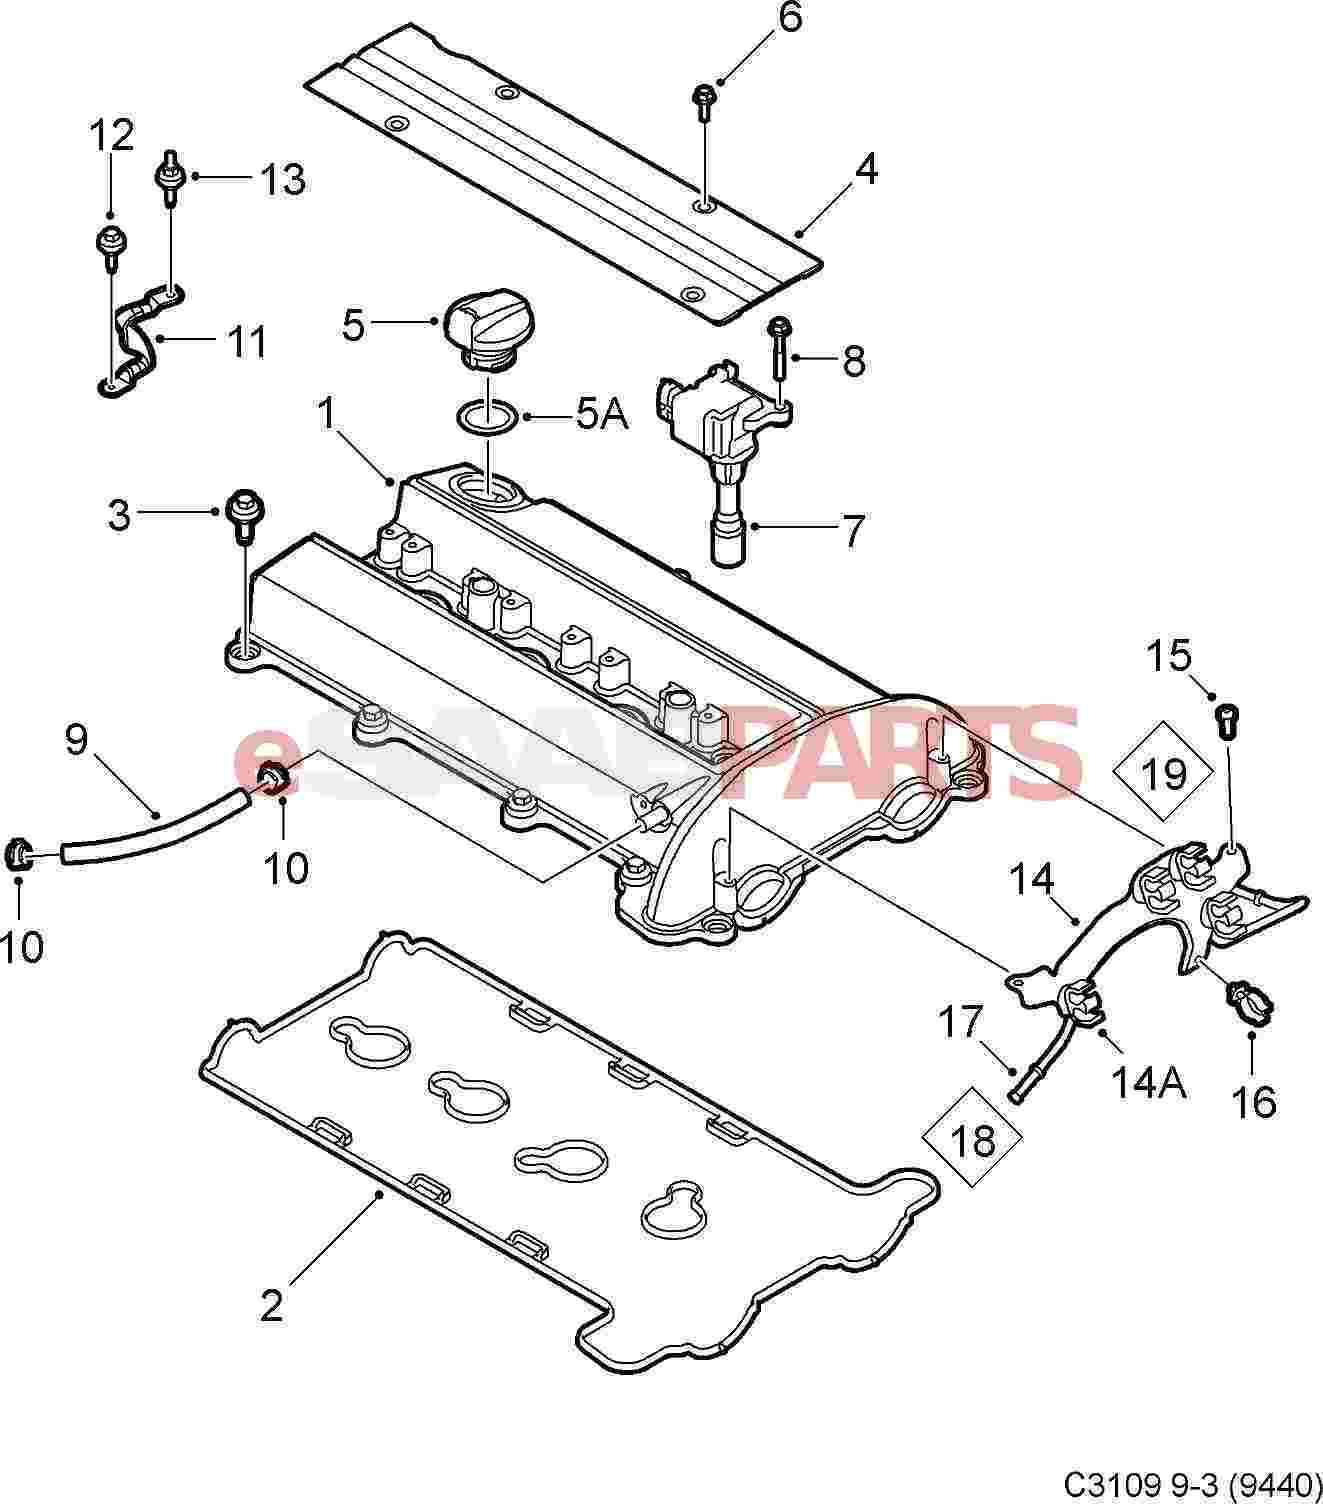 esaabparts com saab 9 3 9440 u003e engine parts u003e valve cover rh esaabparts com Saab 9-3 Parts Saab 9 5 Power Lock Diagram